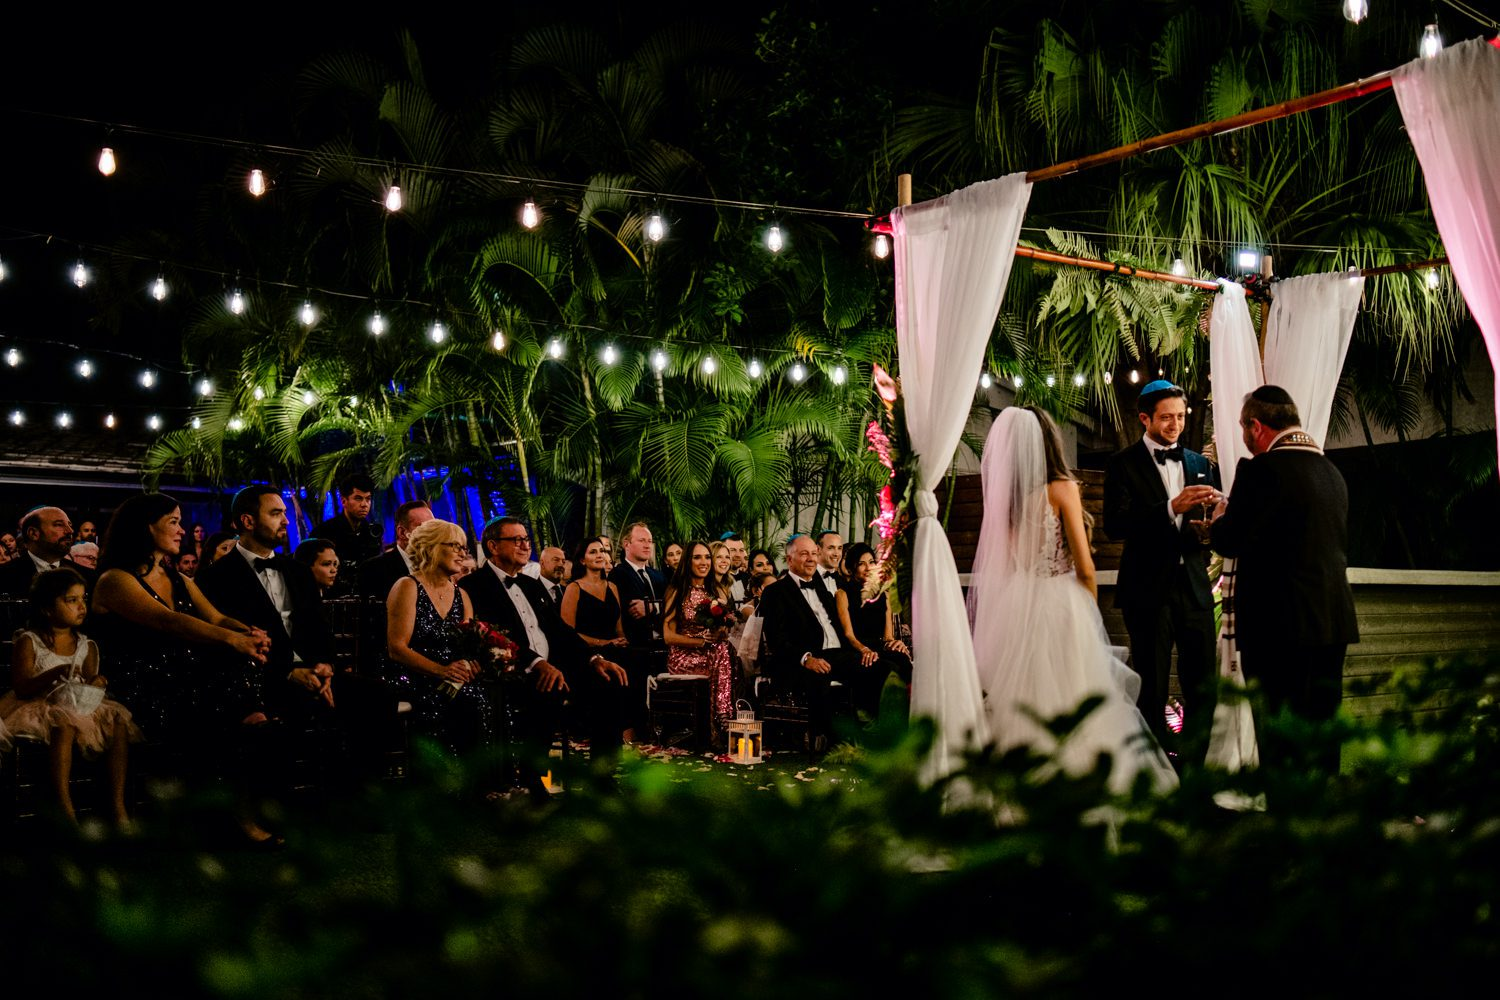 Bride and groom giving a speech at their wedding